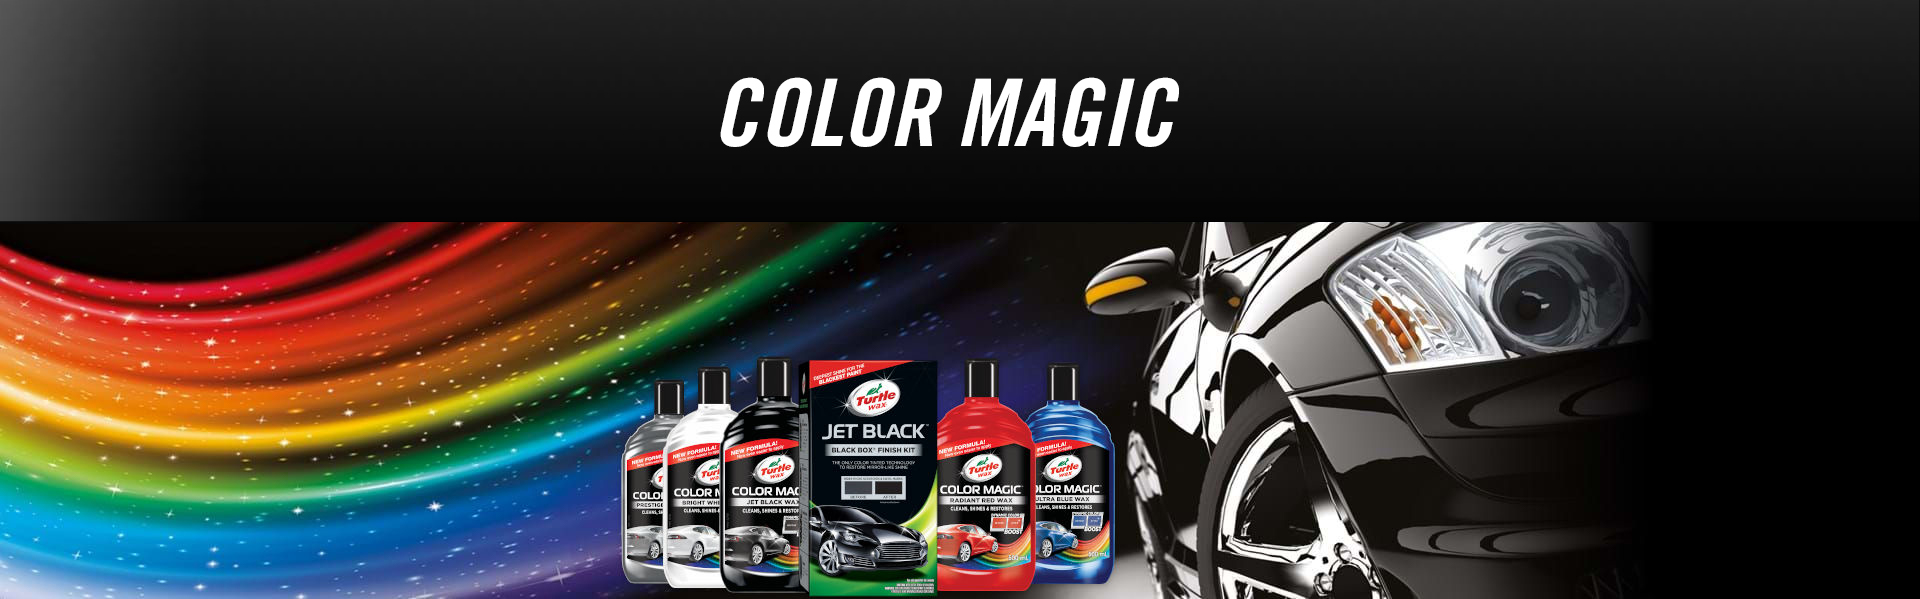 Turtle Wax color-magic banner